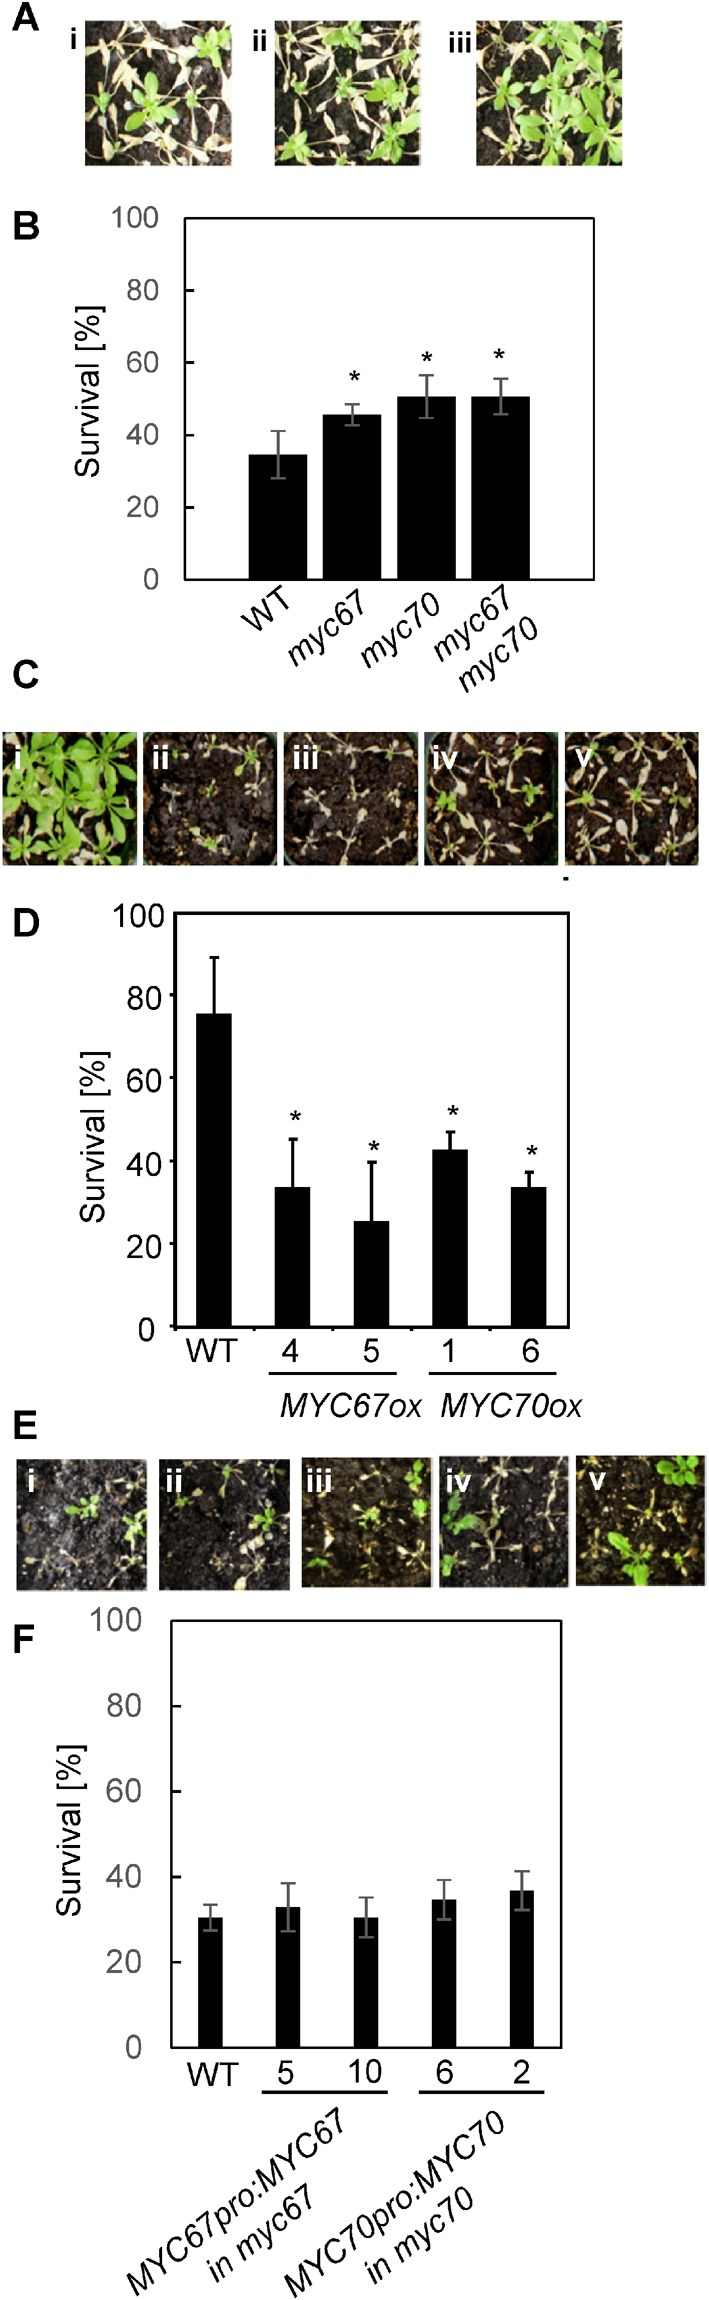 MYC67 and MYC70 negatively regulate freezing tolerance. ( A ) The freezing tolerance of myc67 and myc70 after cold acclimation. Representative wild-type (i), myc67 (ii) and myc70 (iii) plants that were treated with −7 °C are shown. ( B ) Quantification of the survival rates for the cold-acclimated wild-type, myc67 , and myc70 plants after a −7 °C freezing treatment. The data indicate the means and standard errors (n = 6). The tolerance of myc67 , myc70 , and myc67 myc70 mutants was significantly different from that of wild-type plants (t-test, P